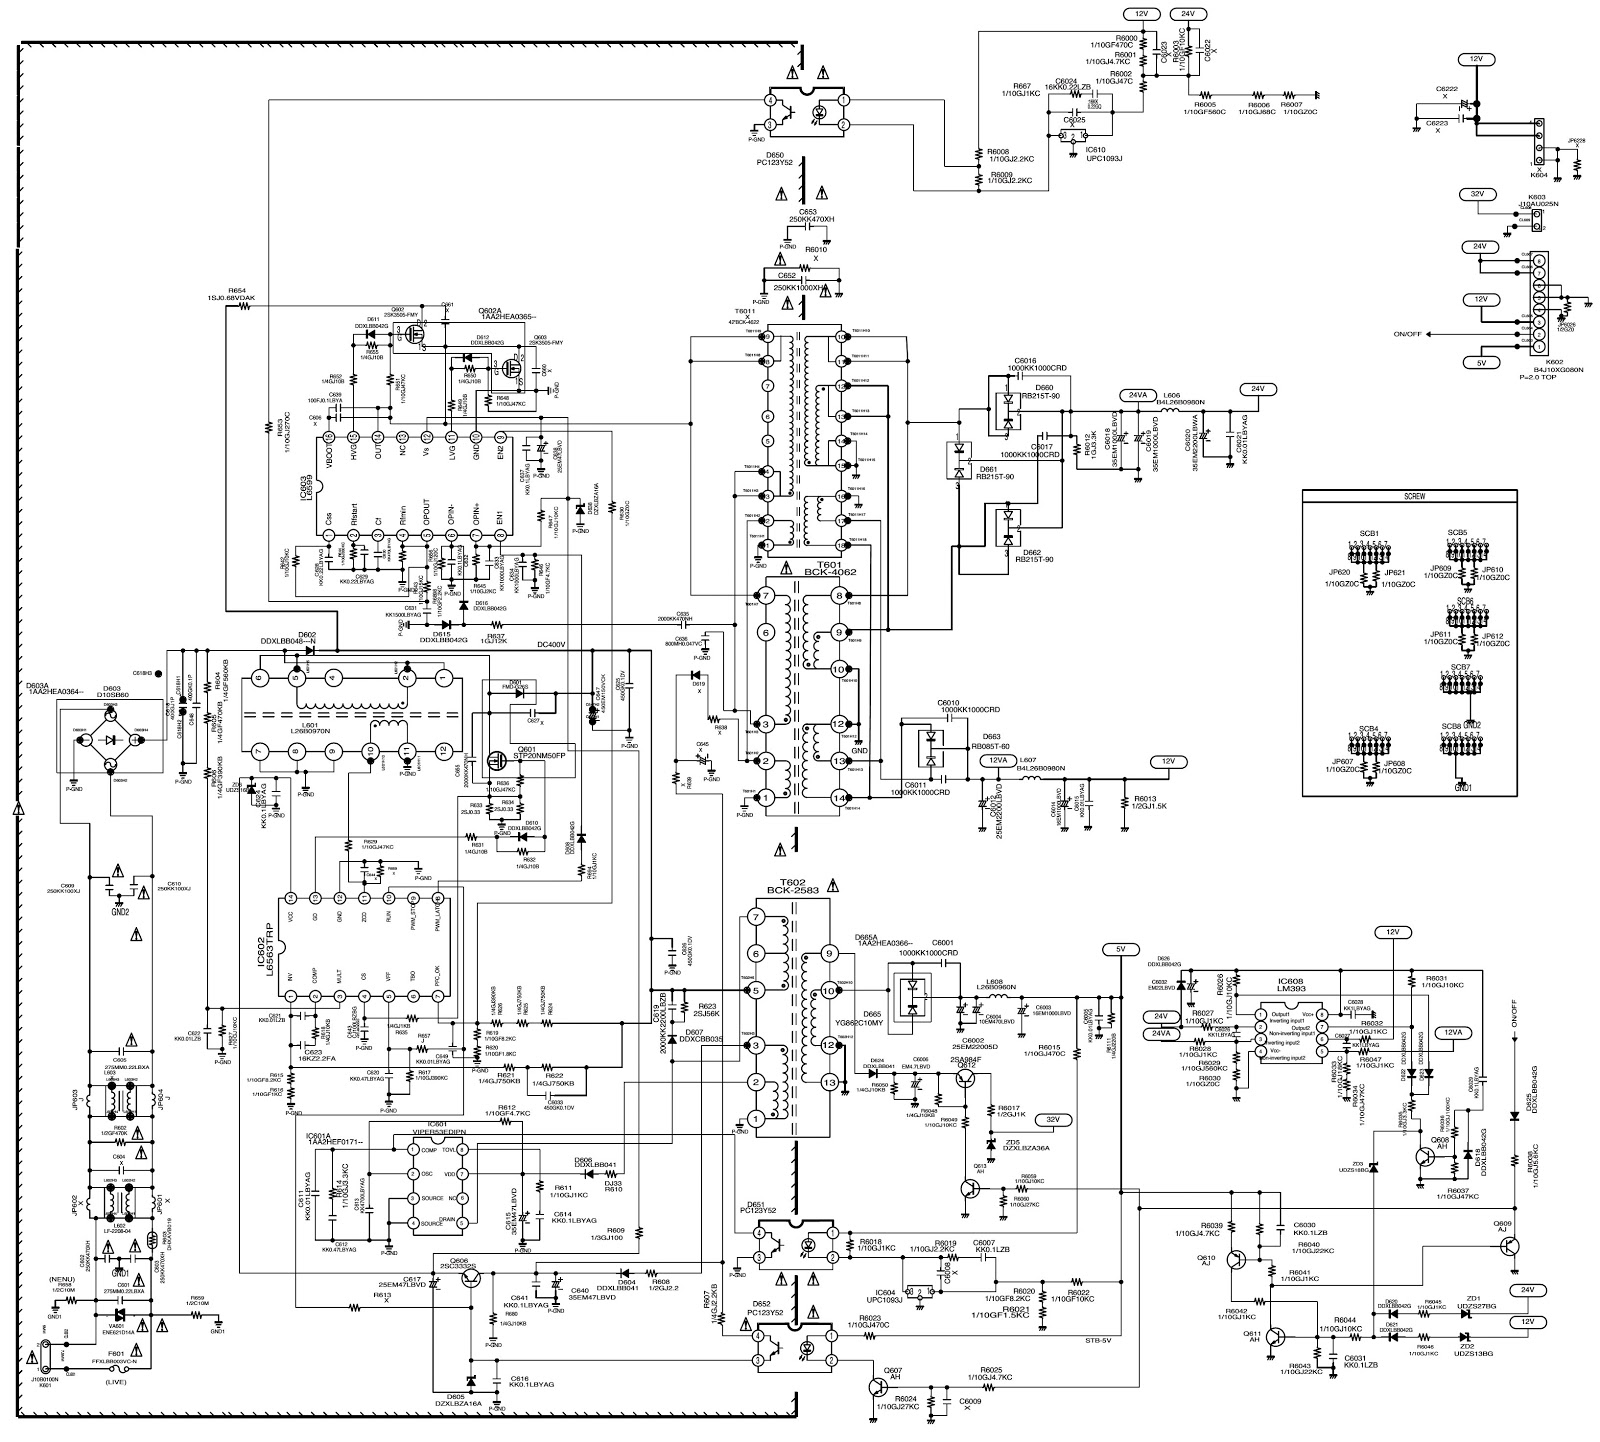 small resolution of sanyo tv diagram wiring diagram yer sanyo tv diagram sanyo tv diagram